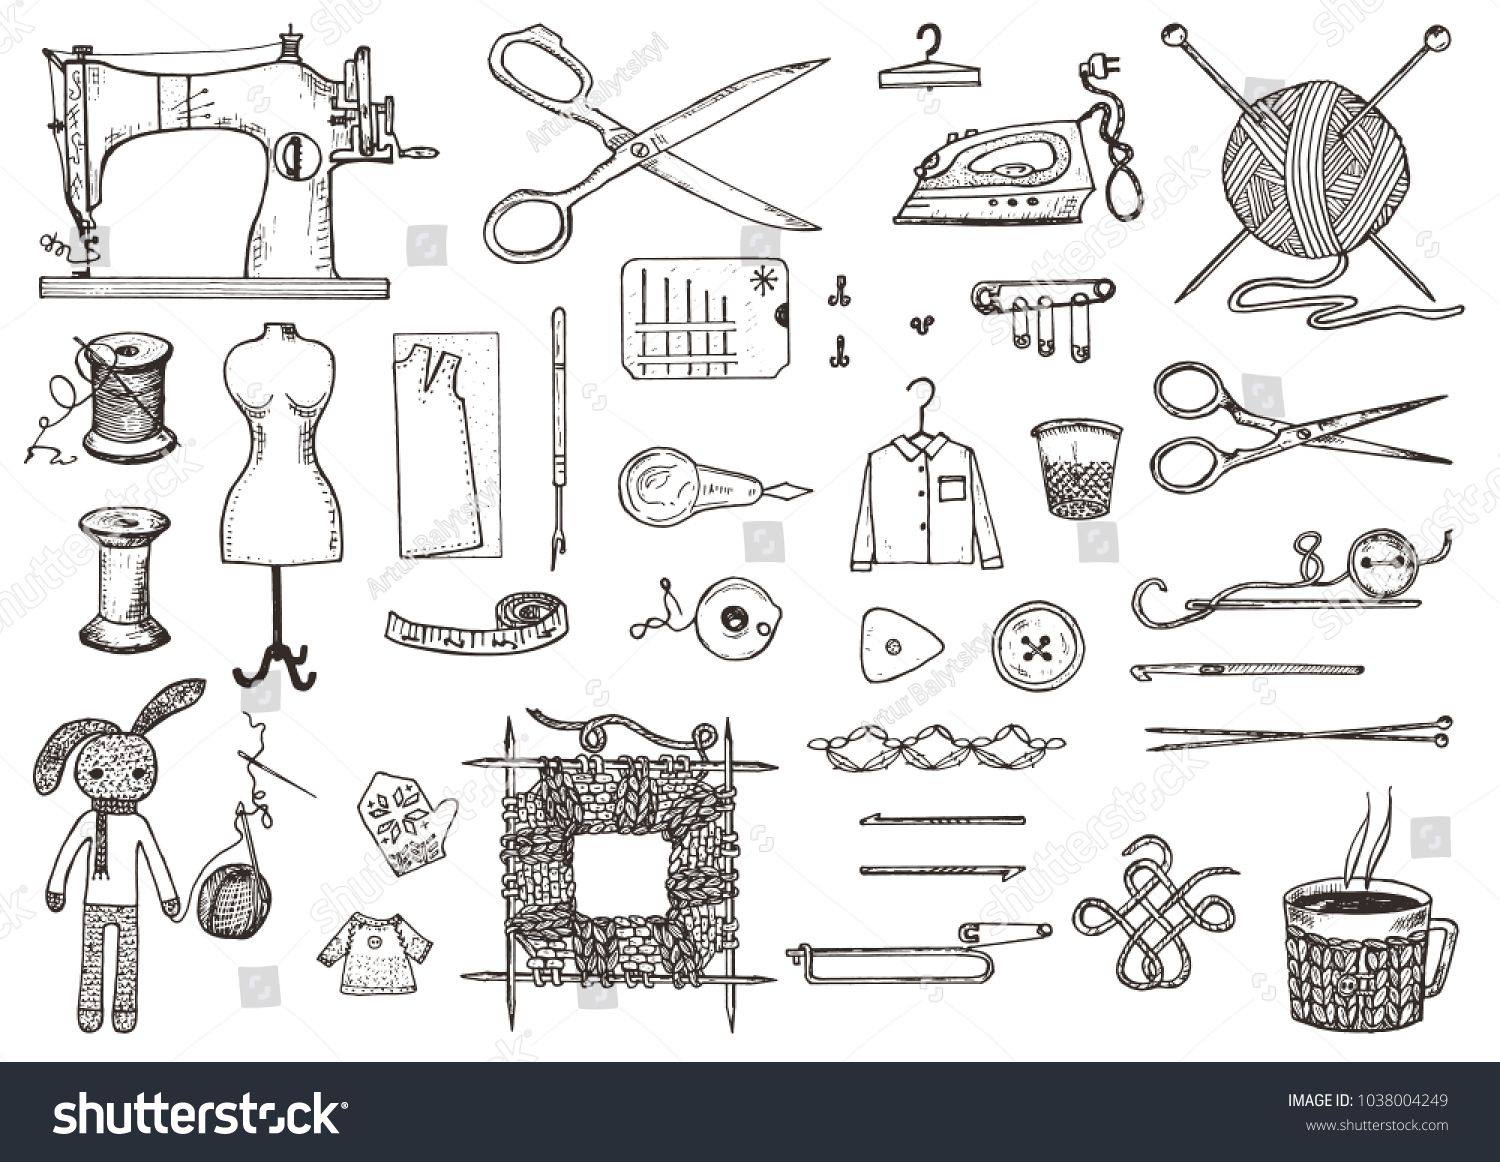 Stock Vector Set Of Sewing Tools And Materials Or Tools